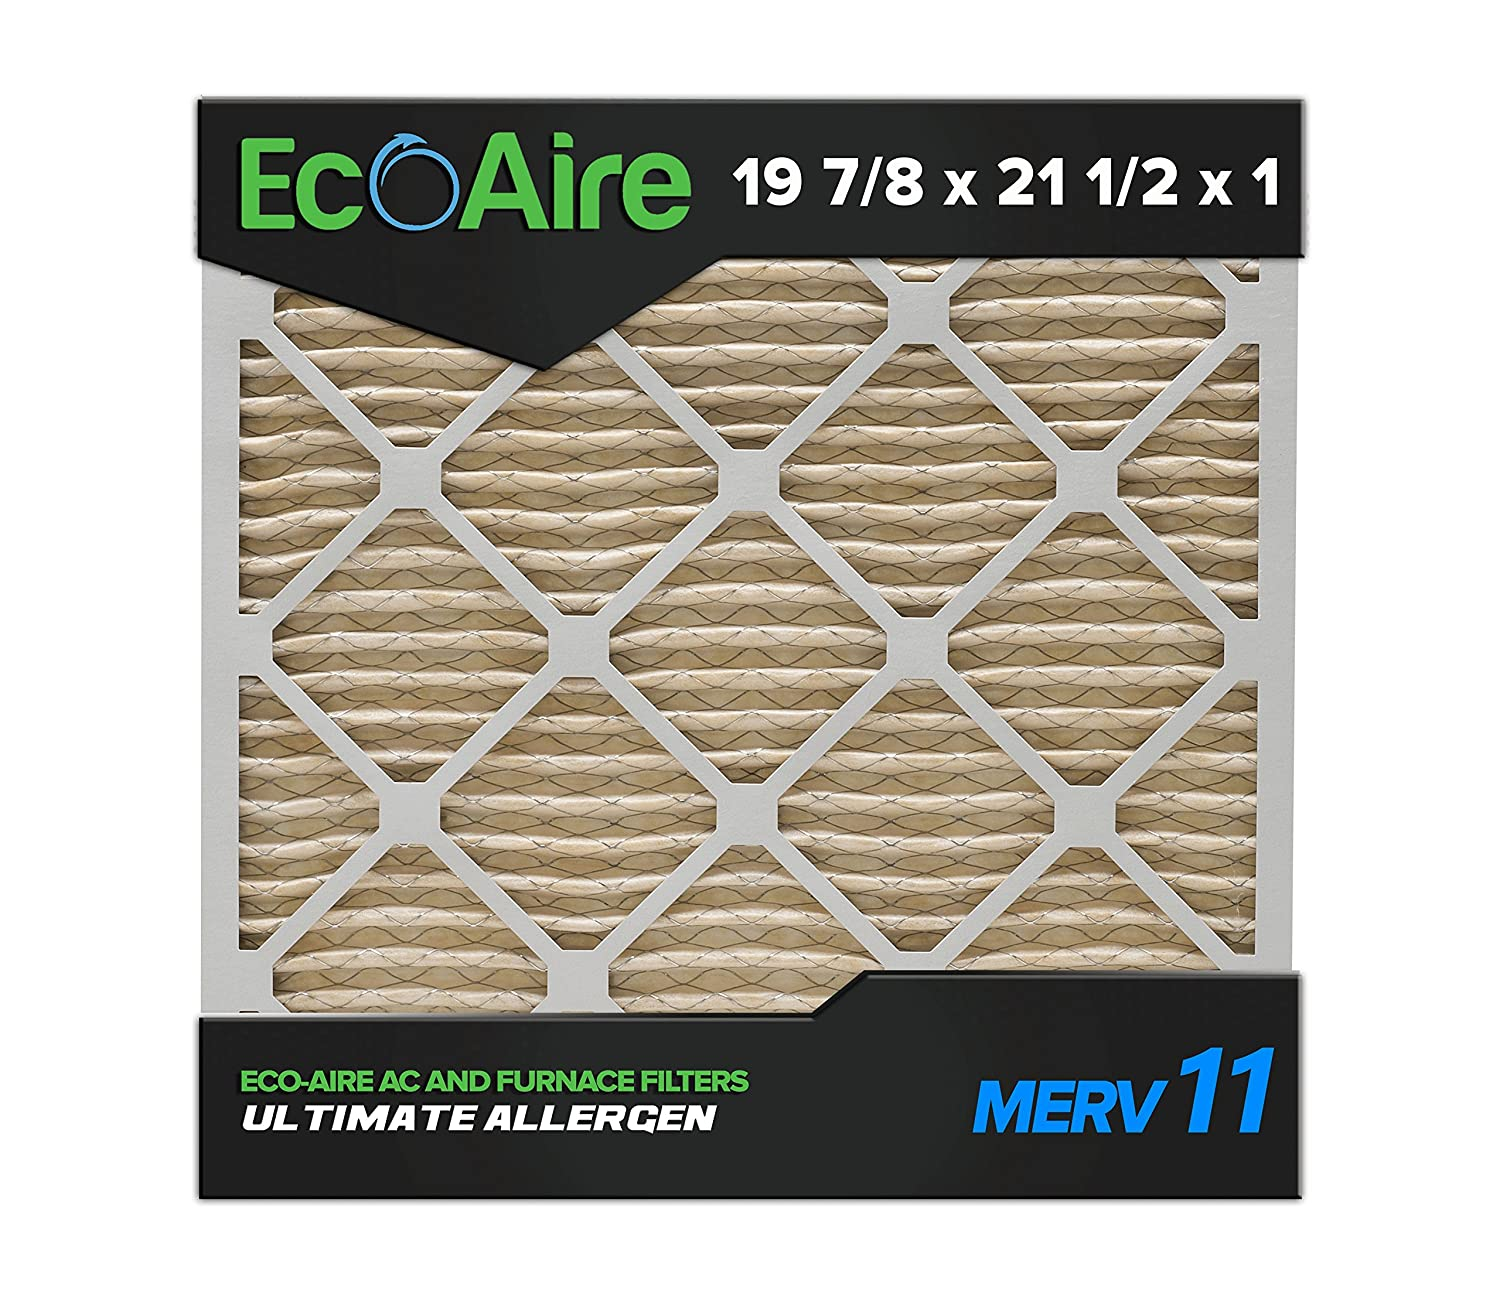 eco aire 19 7 8x21 1 2x1 merv 11 pleated air filter 19 7 8x21 1